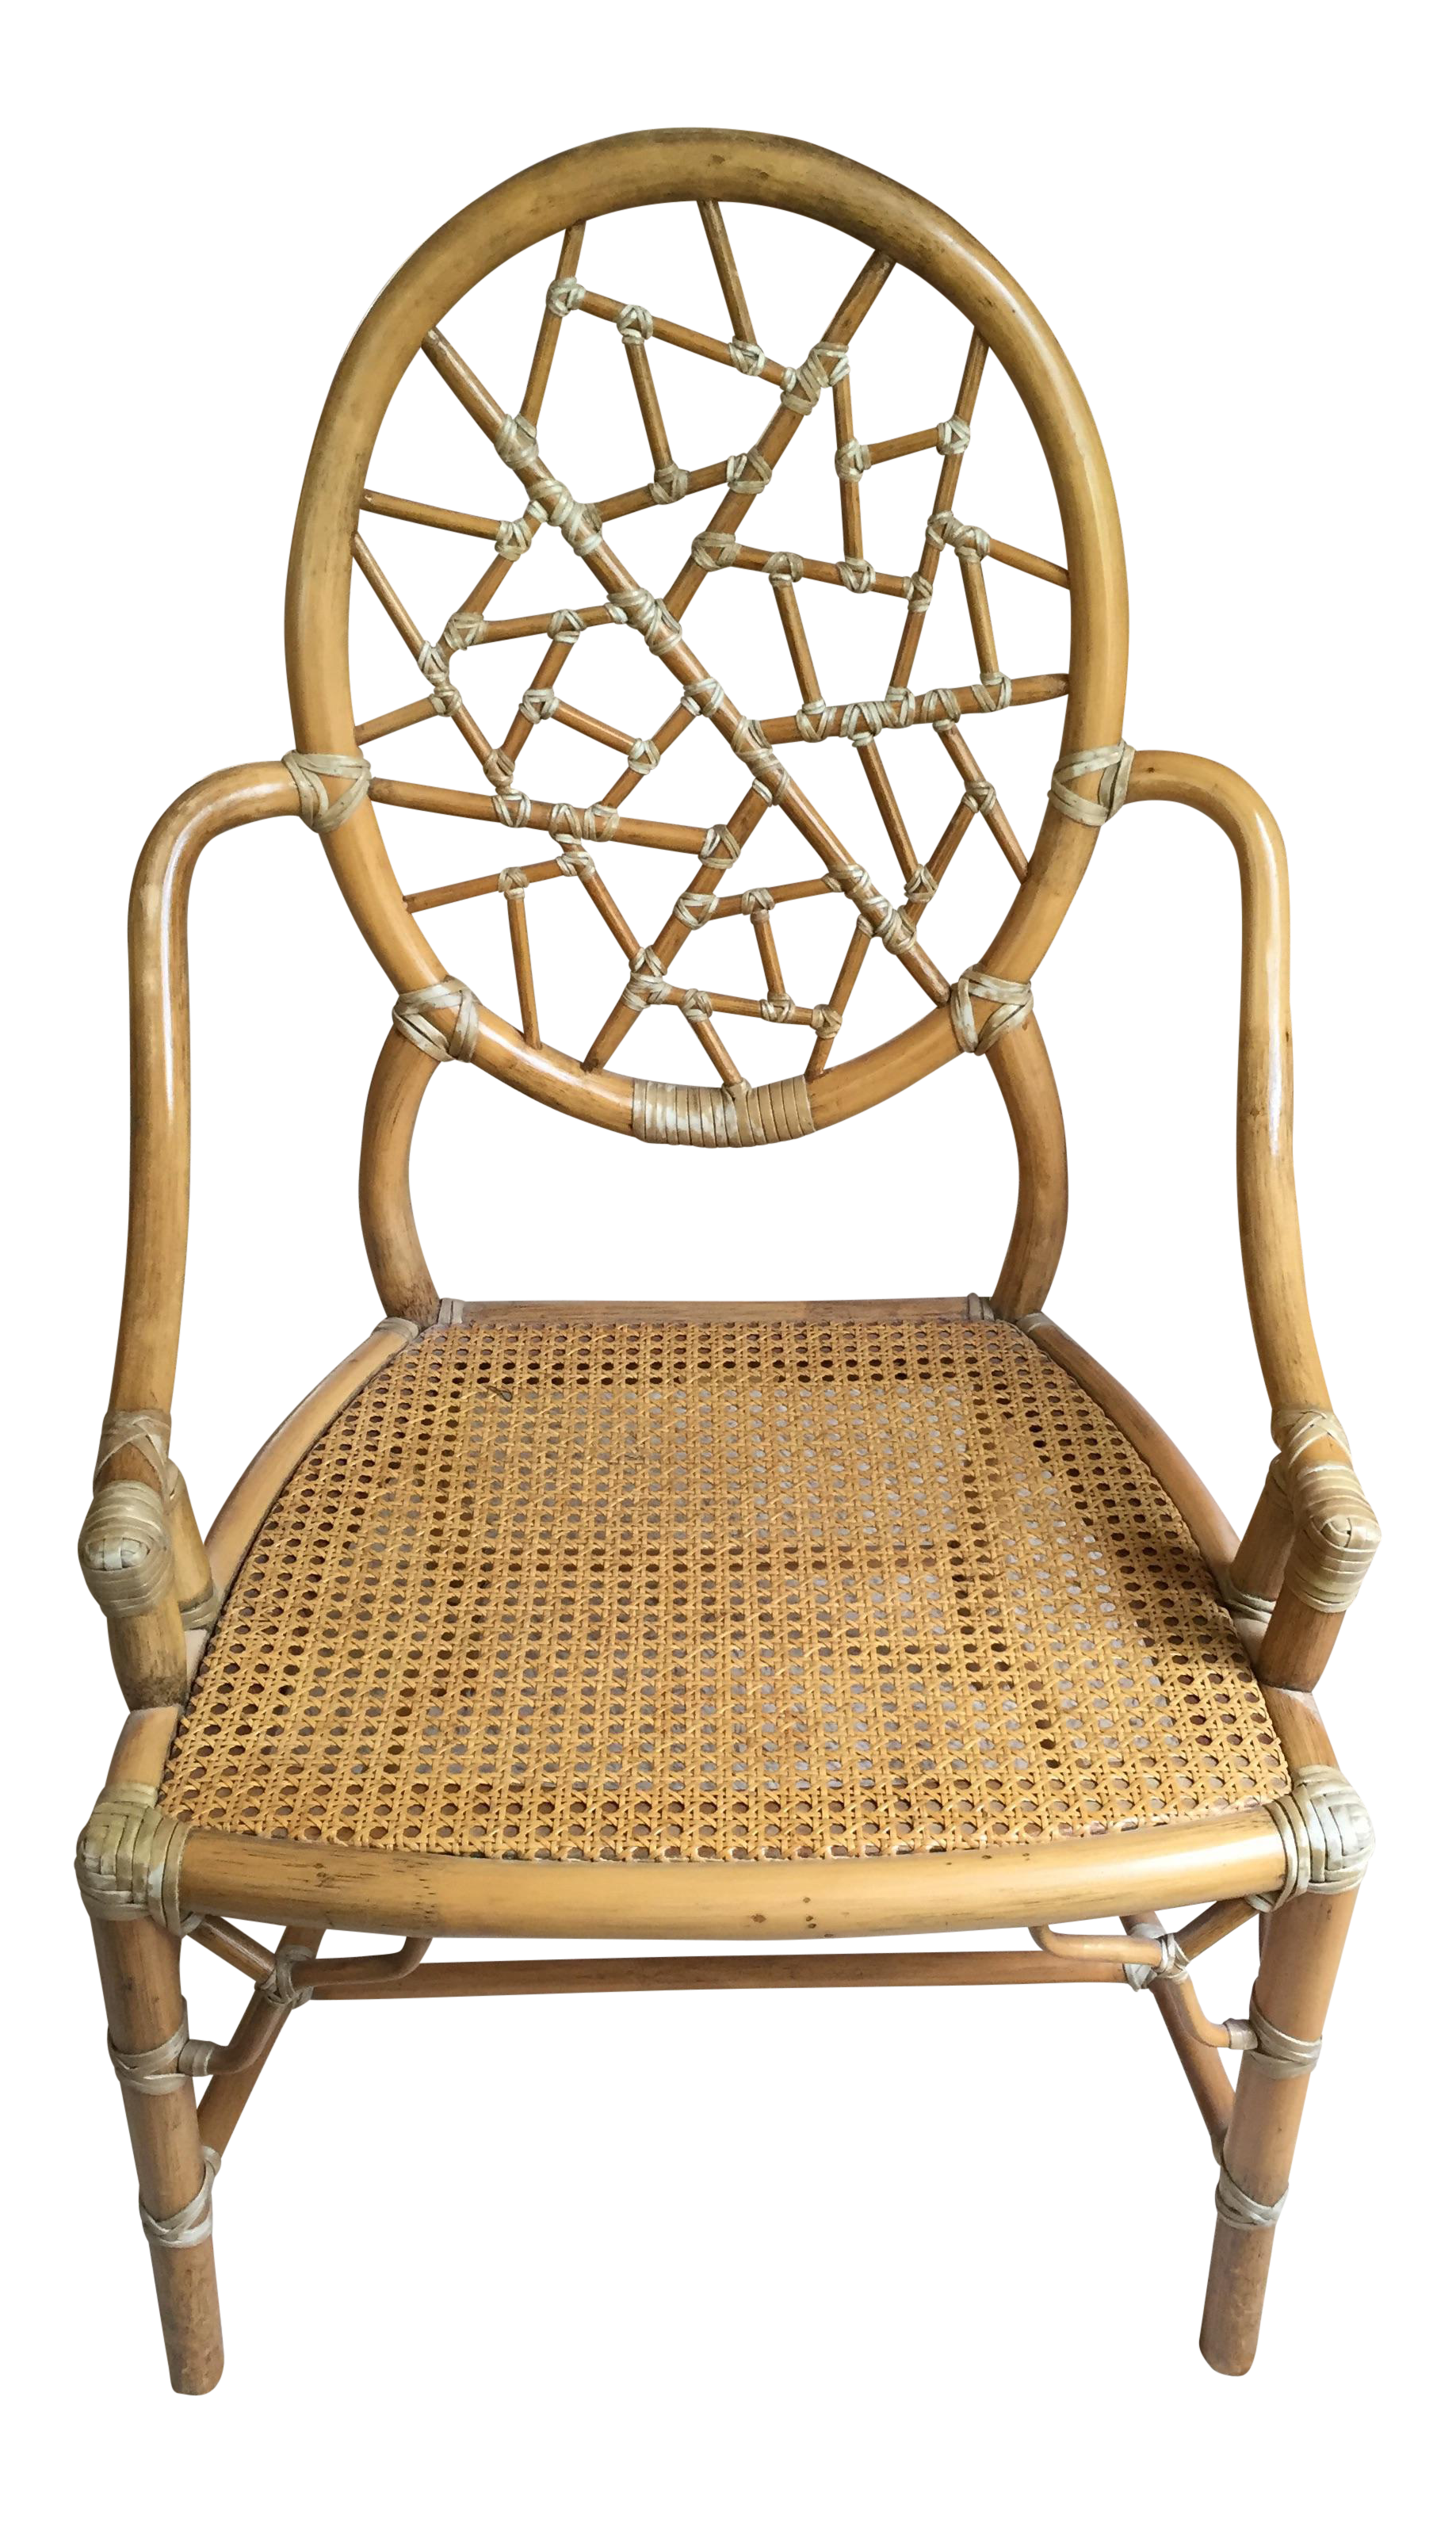 Antique lounge chairs - Vintage Mcguire Cracked Ice Rattan Chair